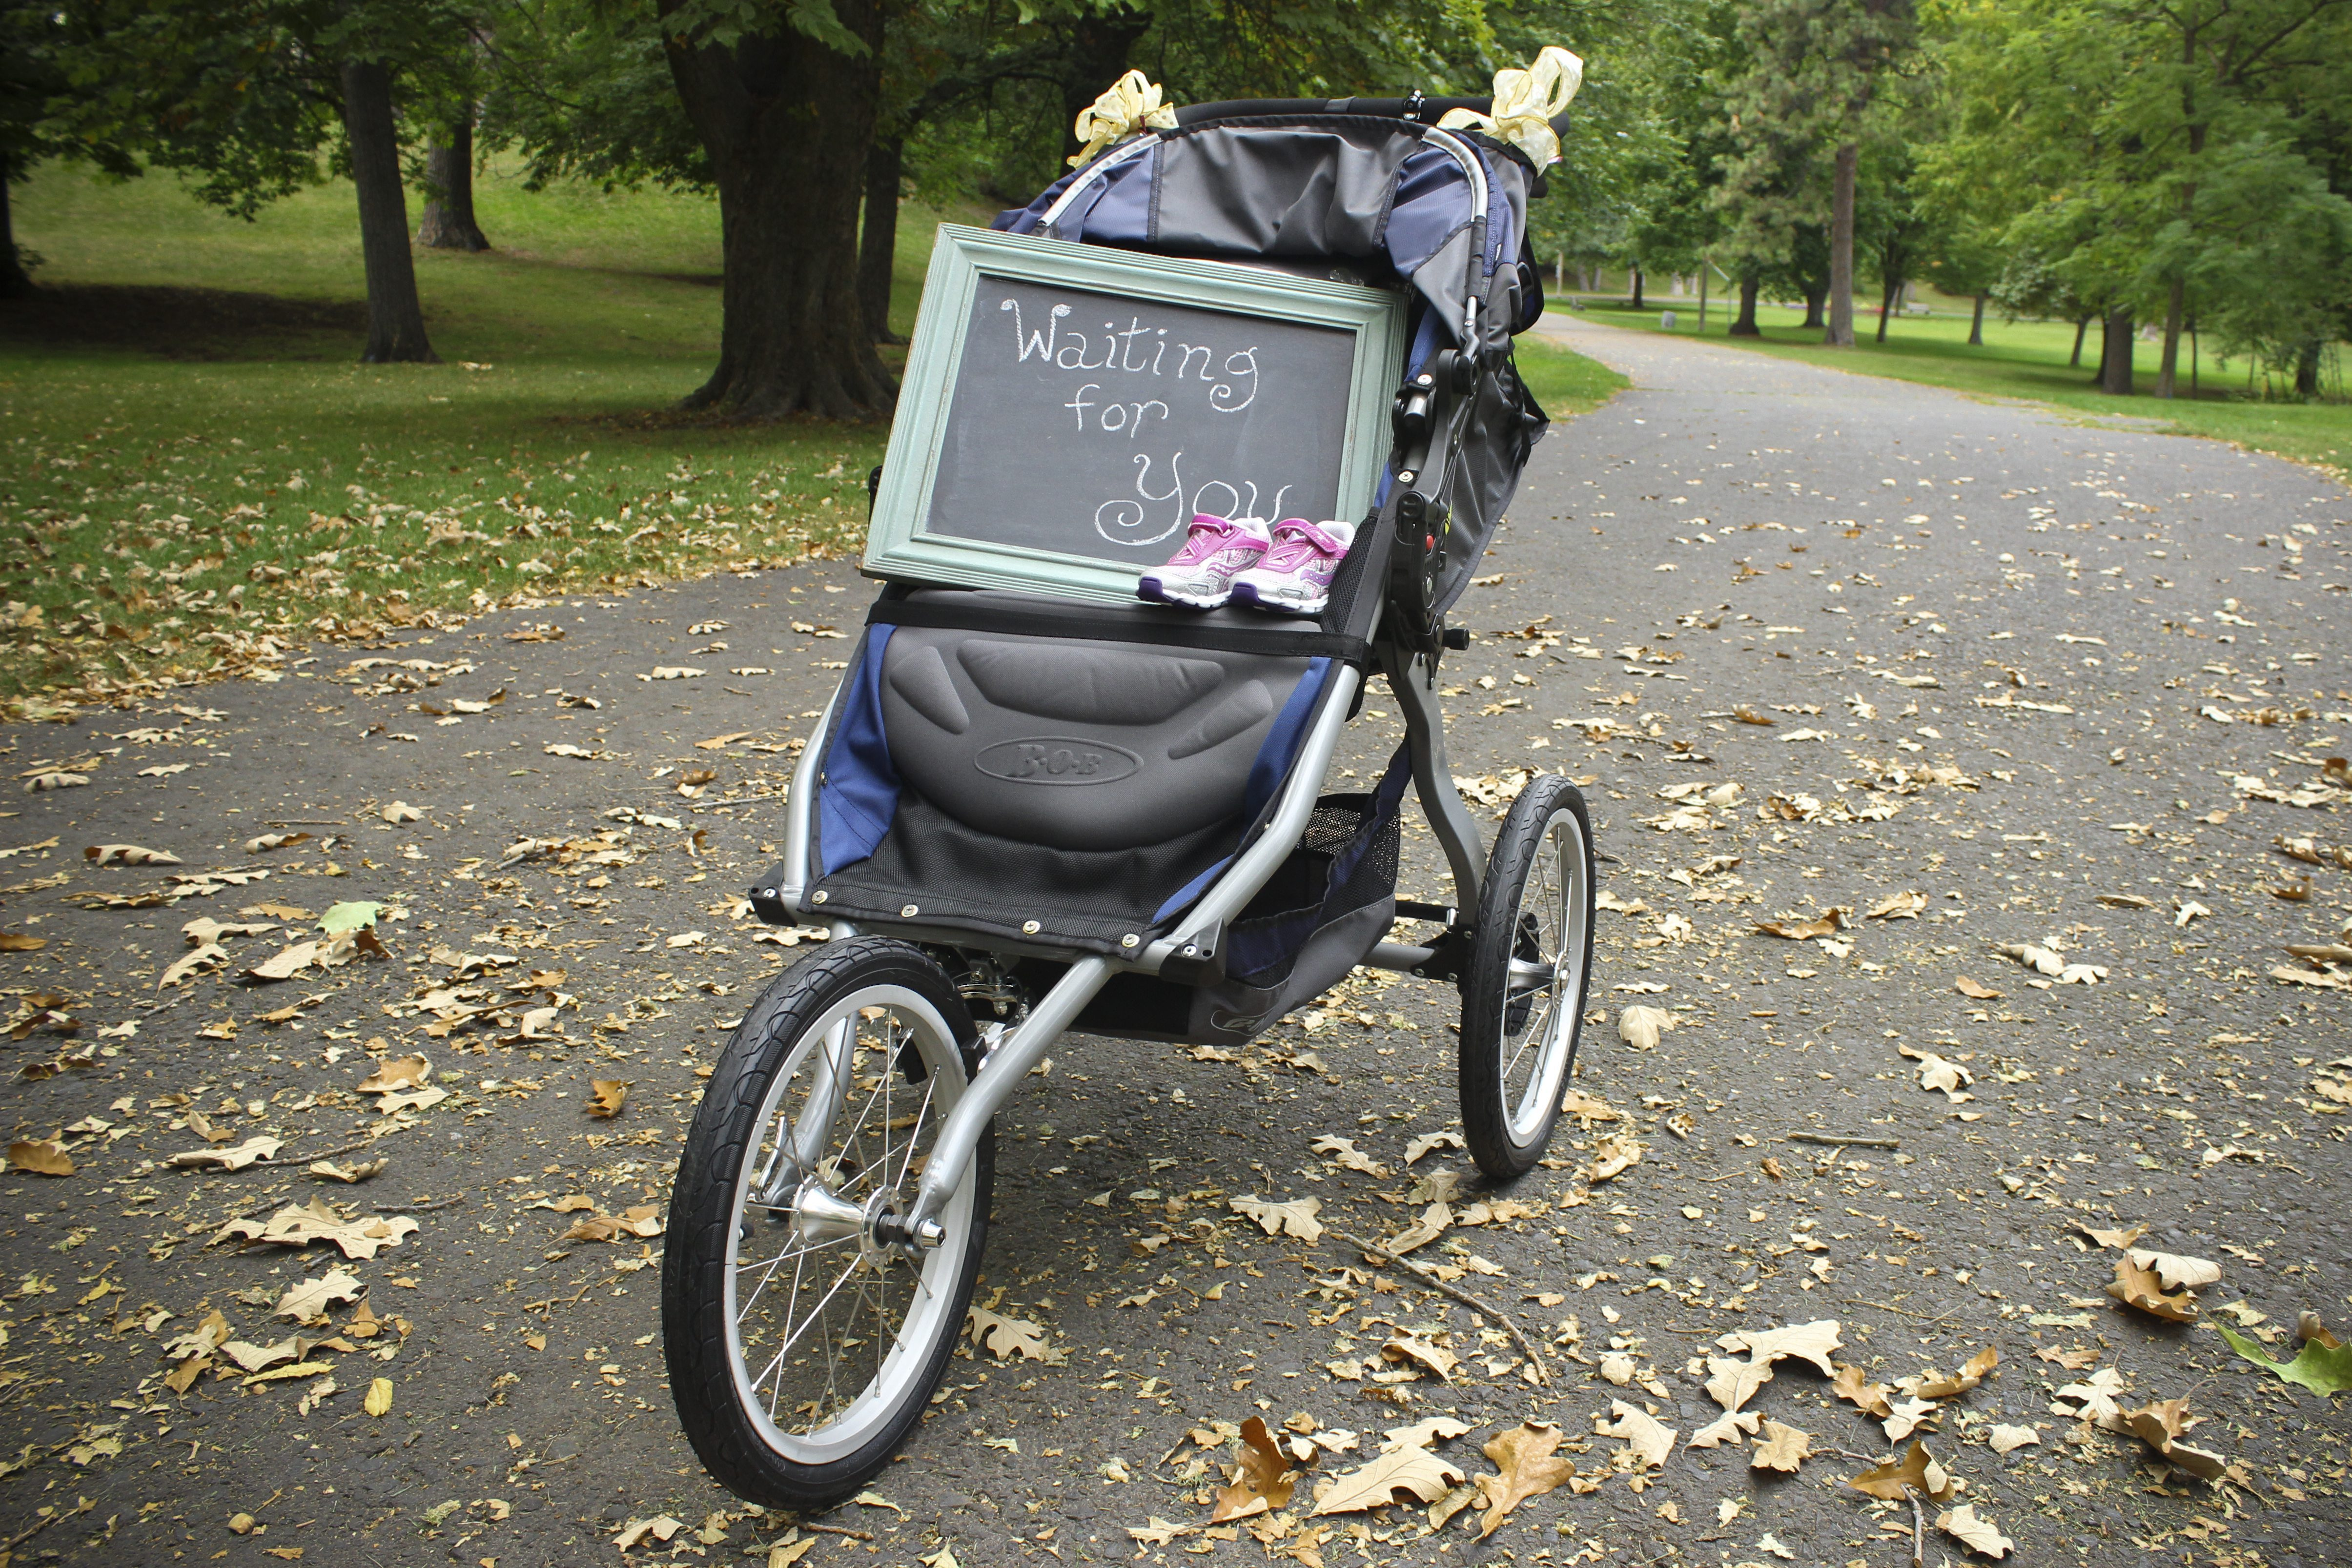 Stroller Waiting For You3